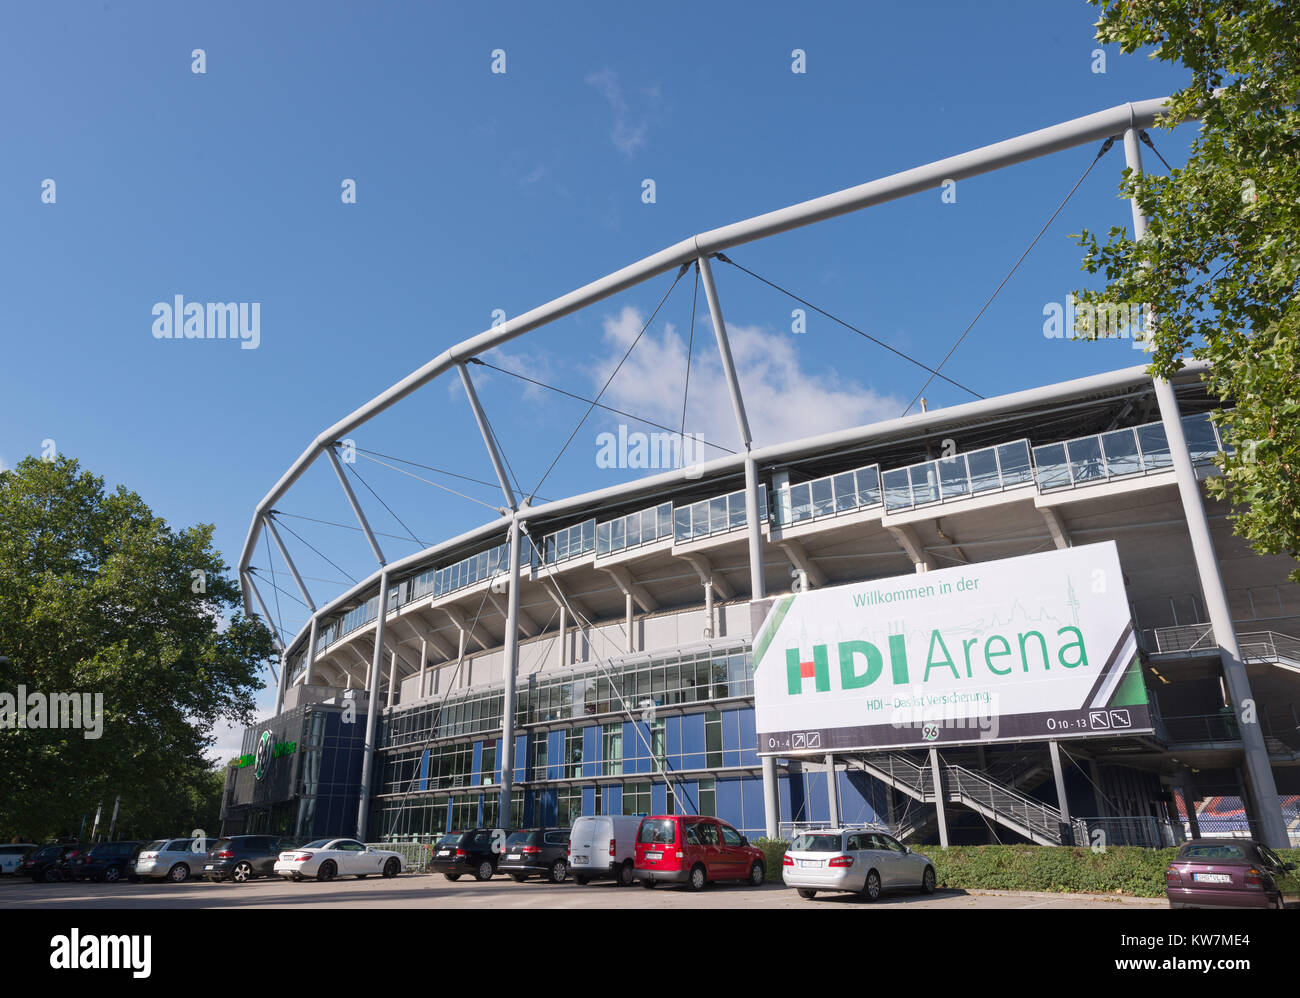 HDI Arena Hannover - Stock Image